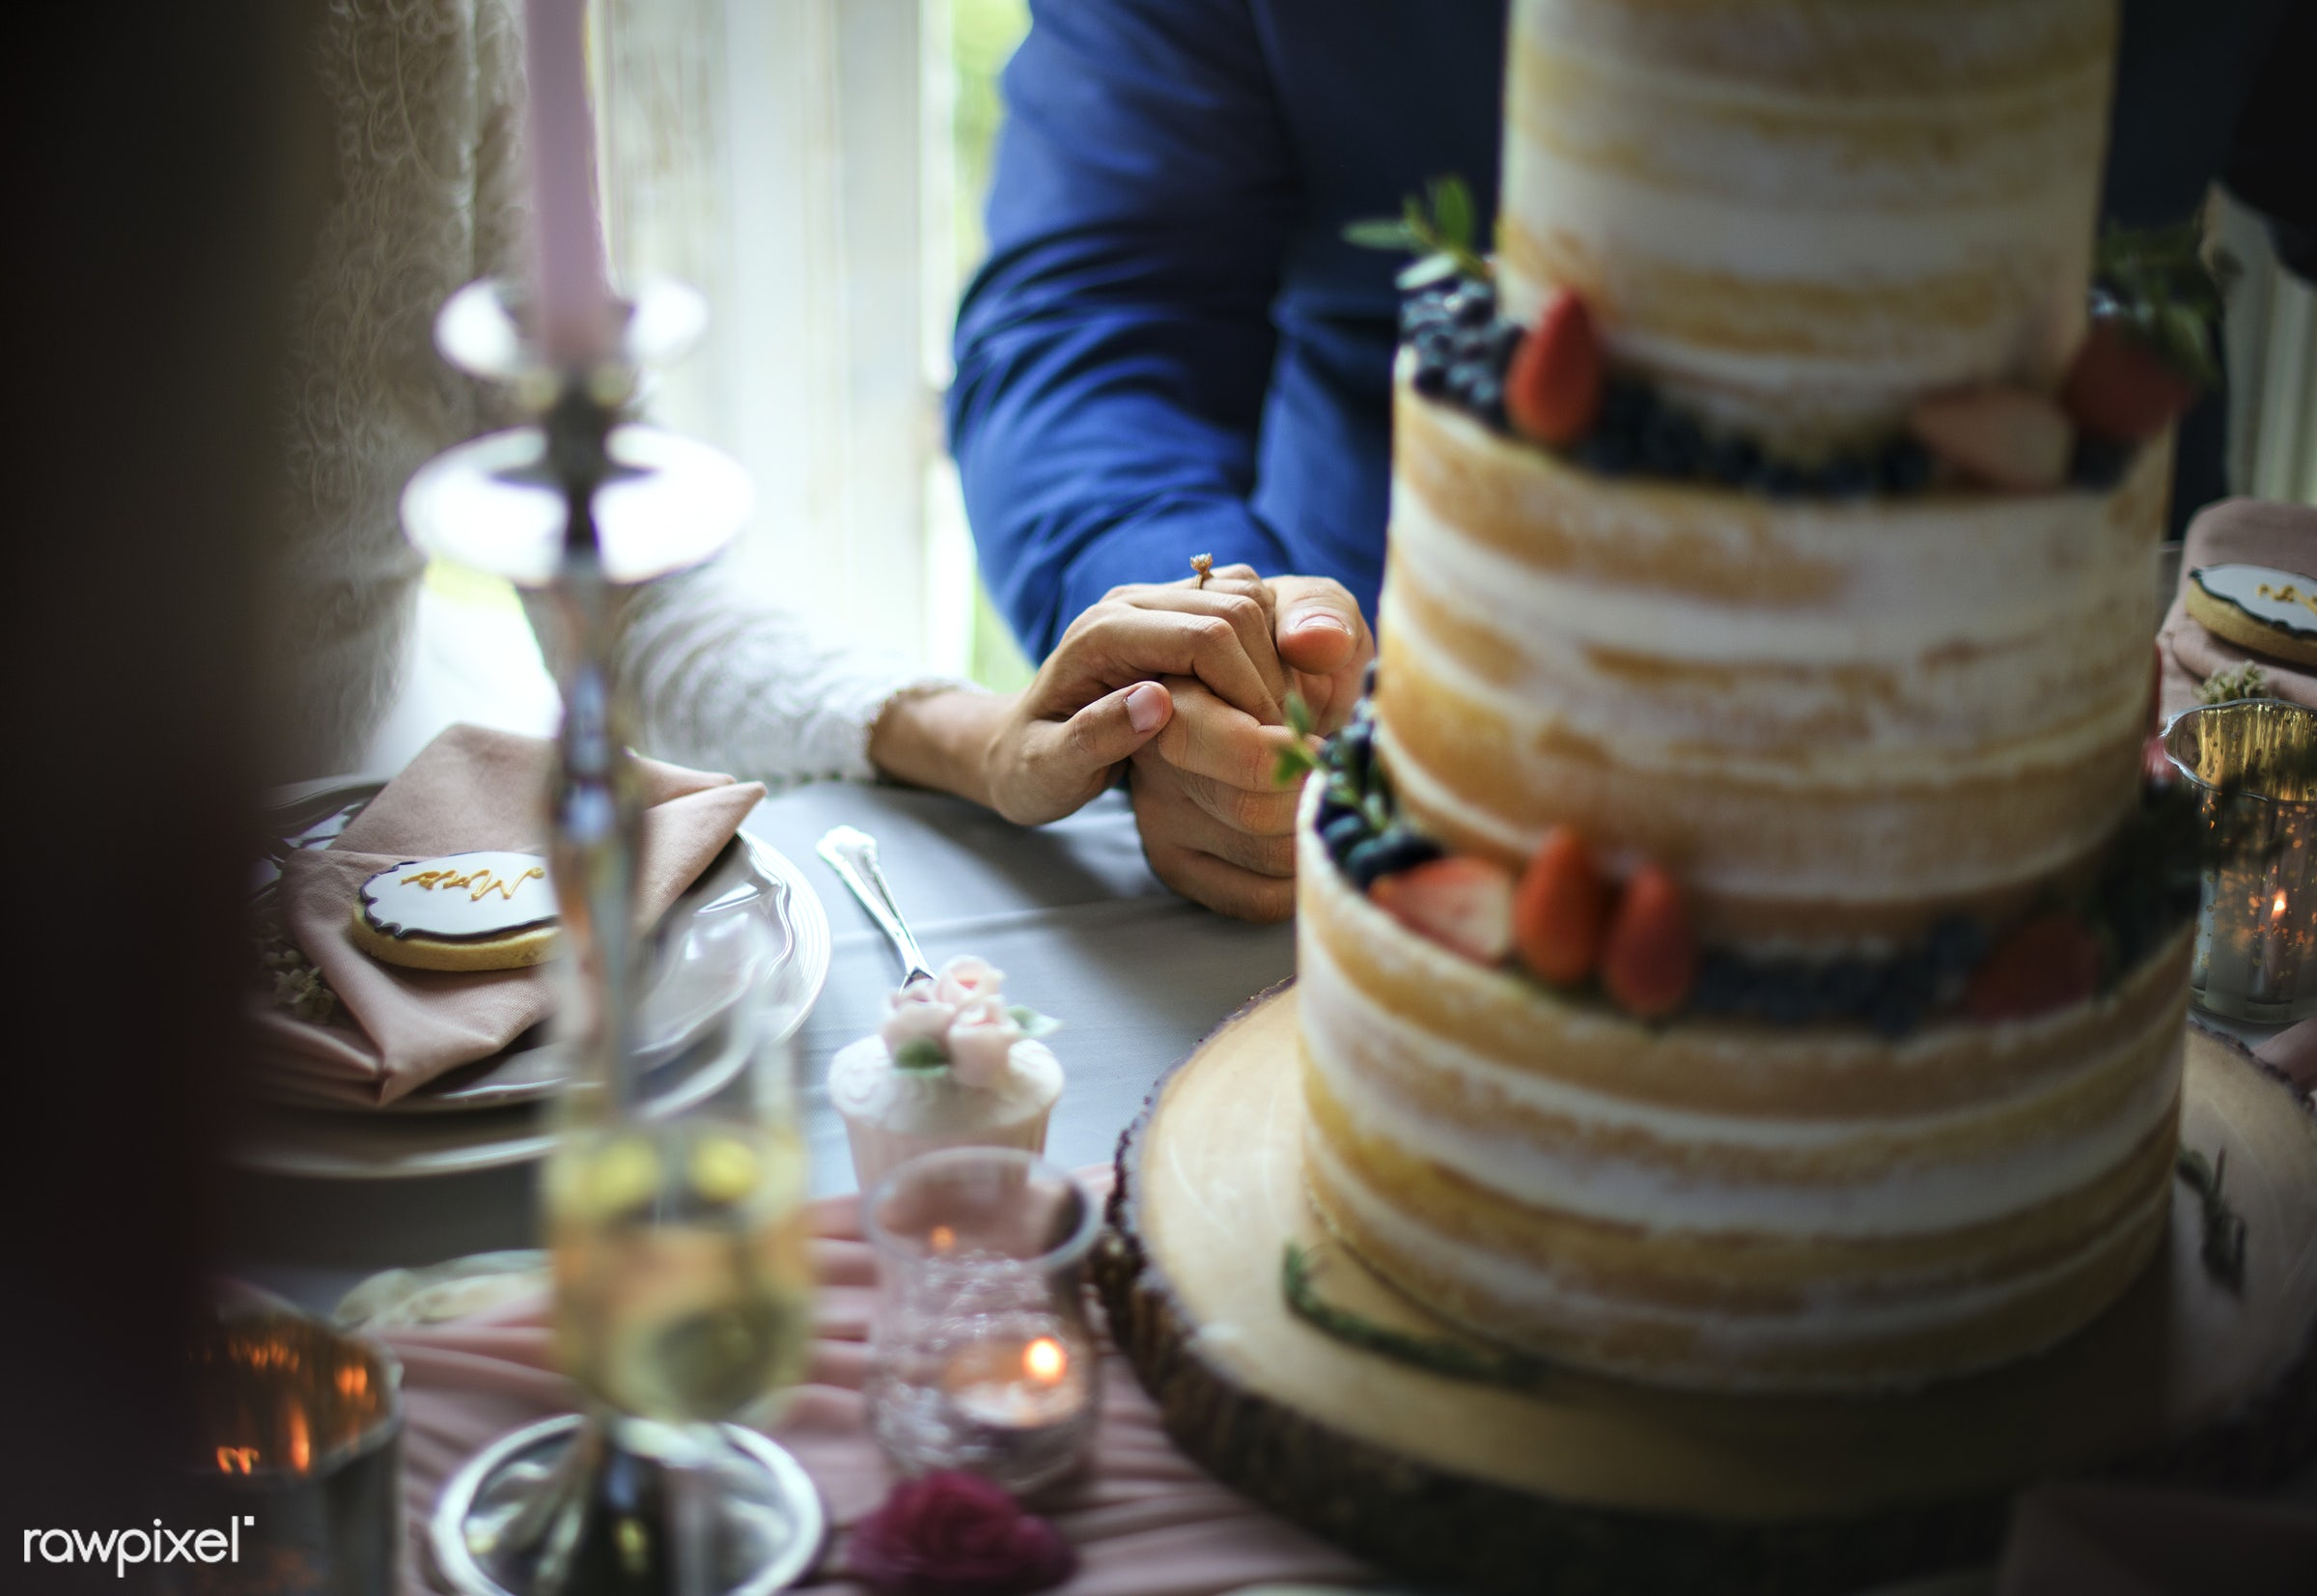 holding, party, people, together, love, married, hands, banquet, couple, bride, closeup, ring, cake, togetherness, ceremony...